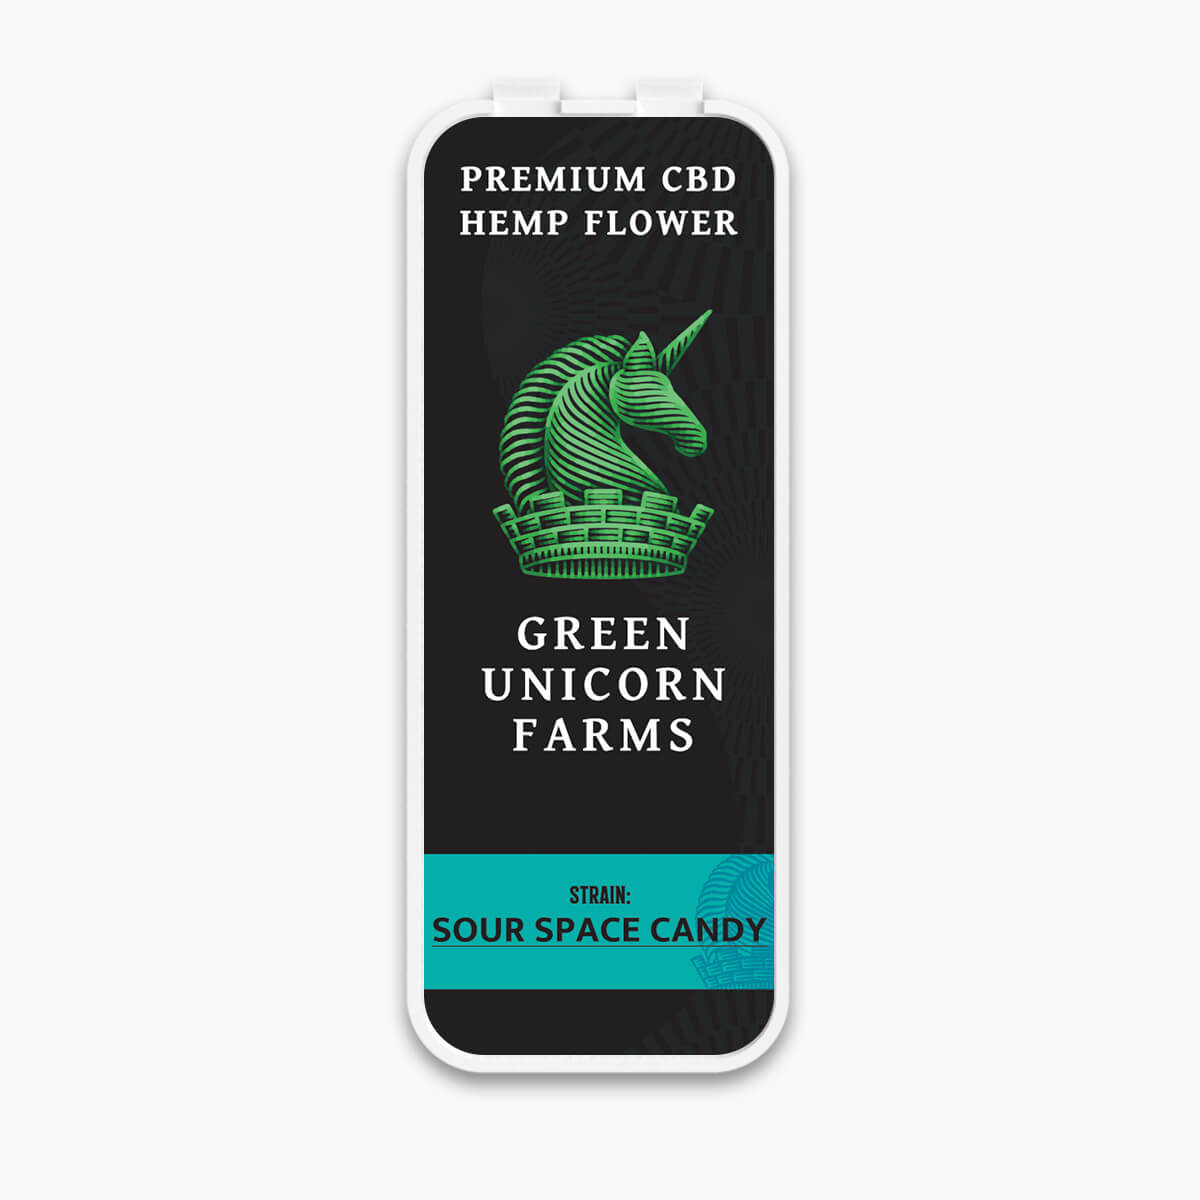 Sour Space Candy pre roll pack